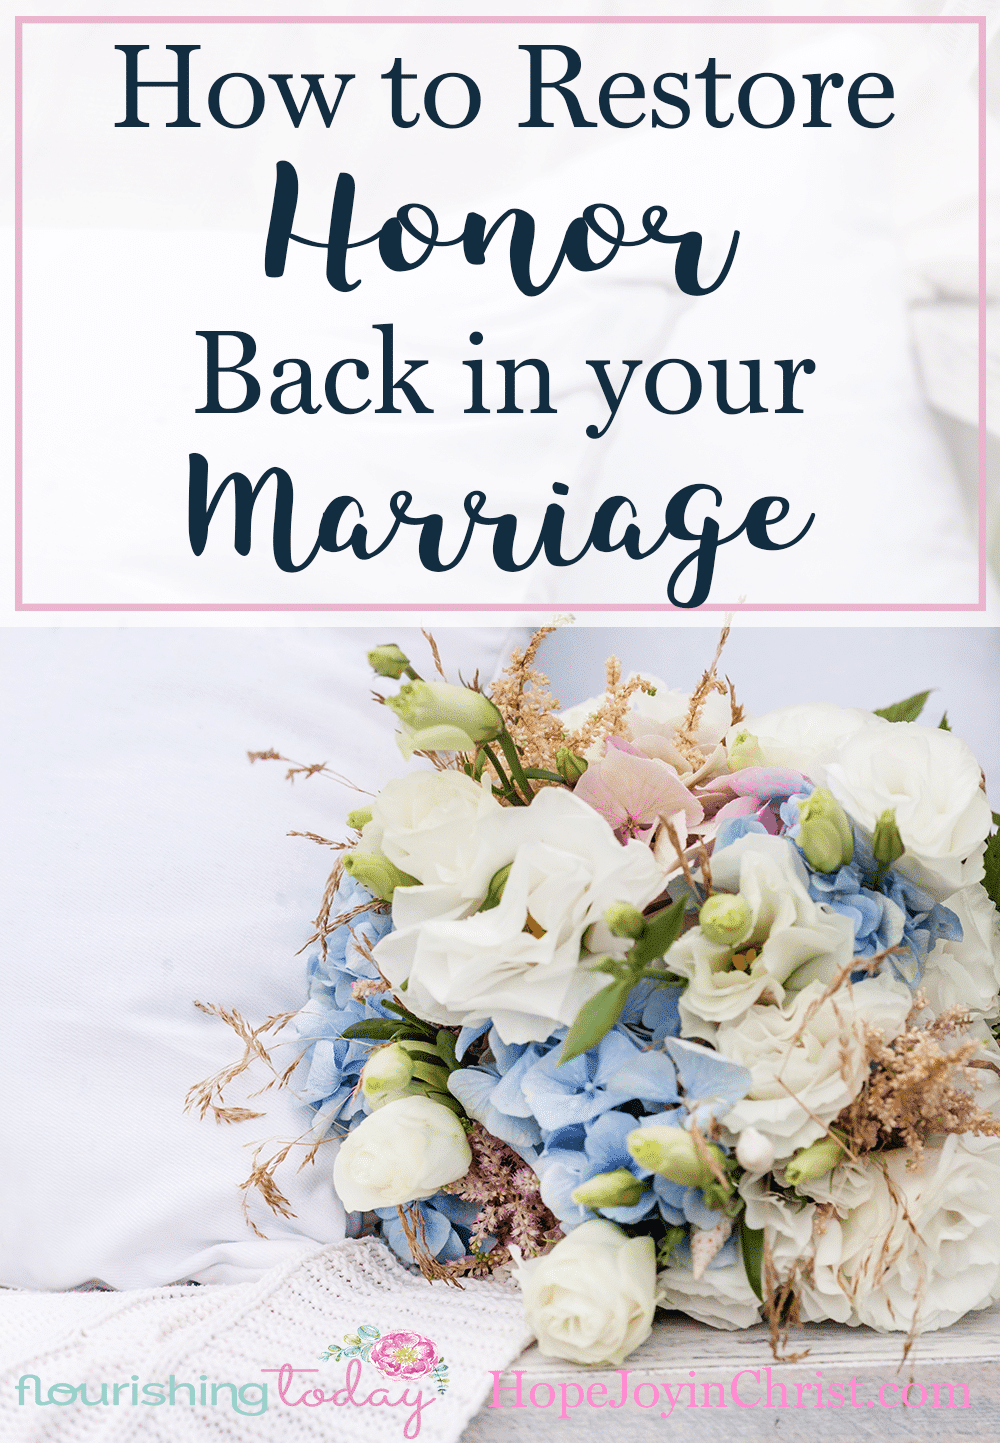 Do you know what it means to honor your husband? Are you at a loss for how to practically show him honor? Here are some tips for restoring honor in marriage